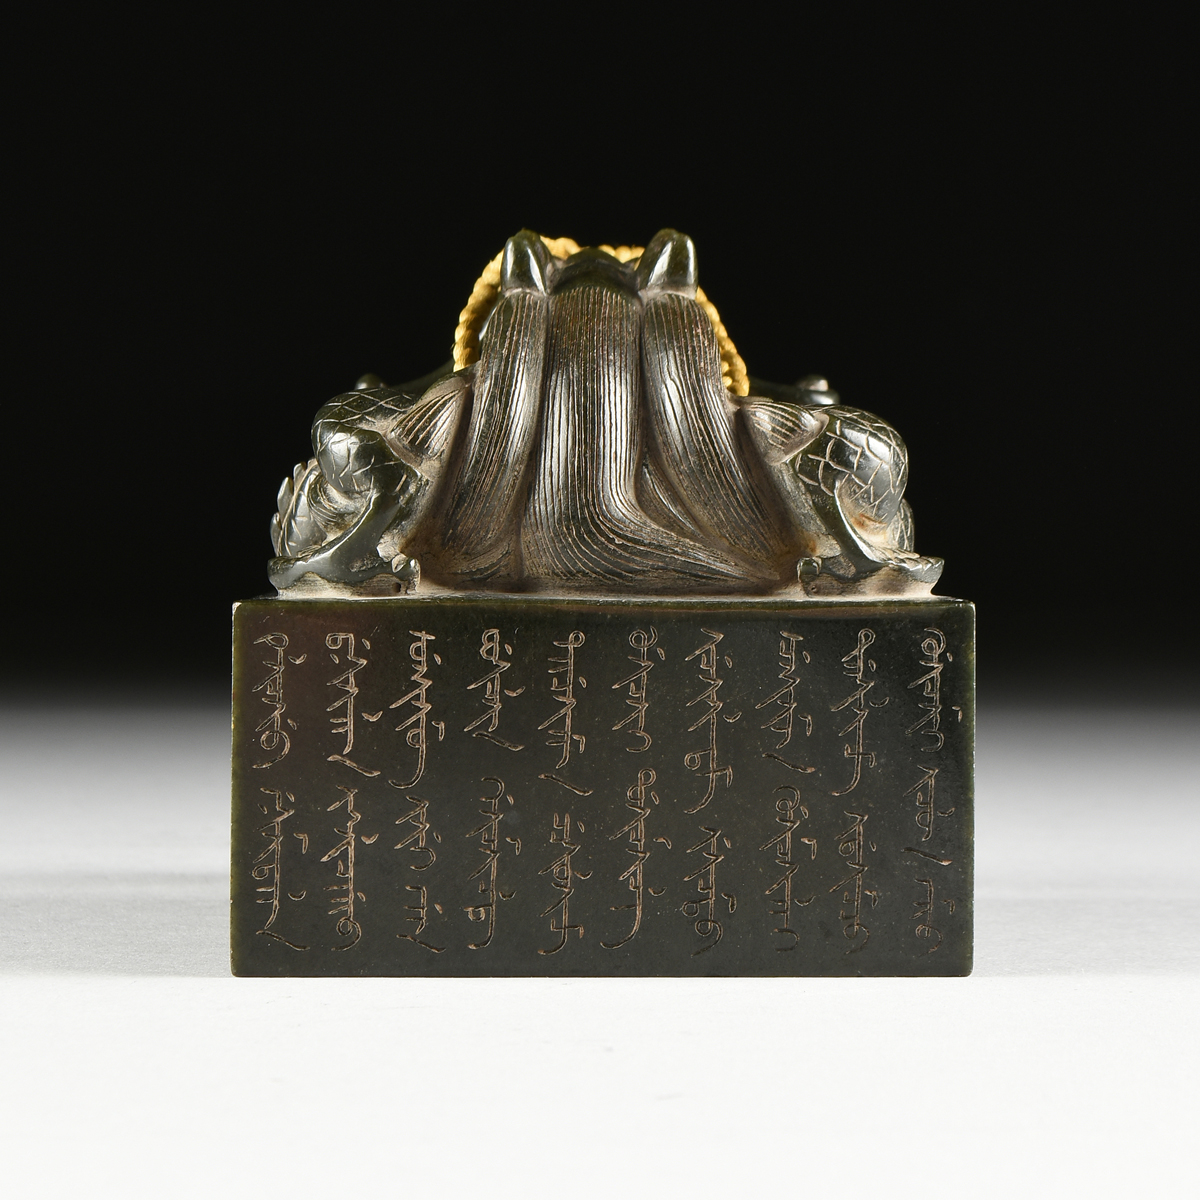 Lot 24 - A QING DYNASTY STYLE DARK GREEN HARDSTONE COURT SEAL FOR DELIVERING INSTRUCTIONS IN A ZITAN BOX,